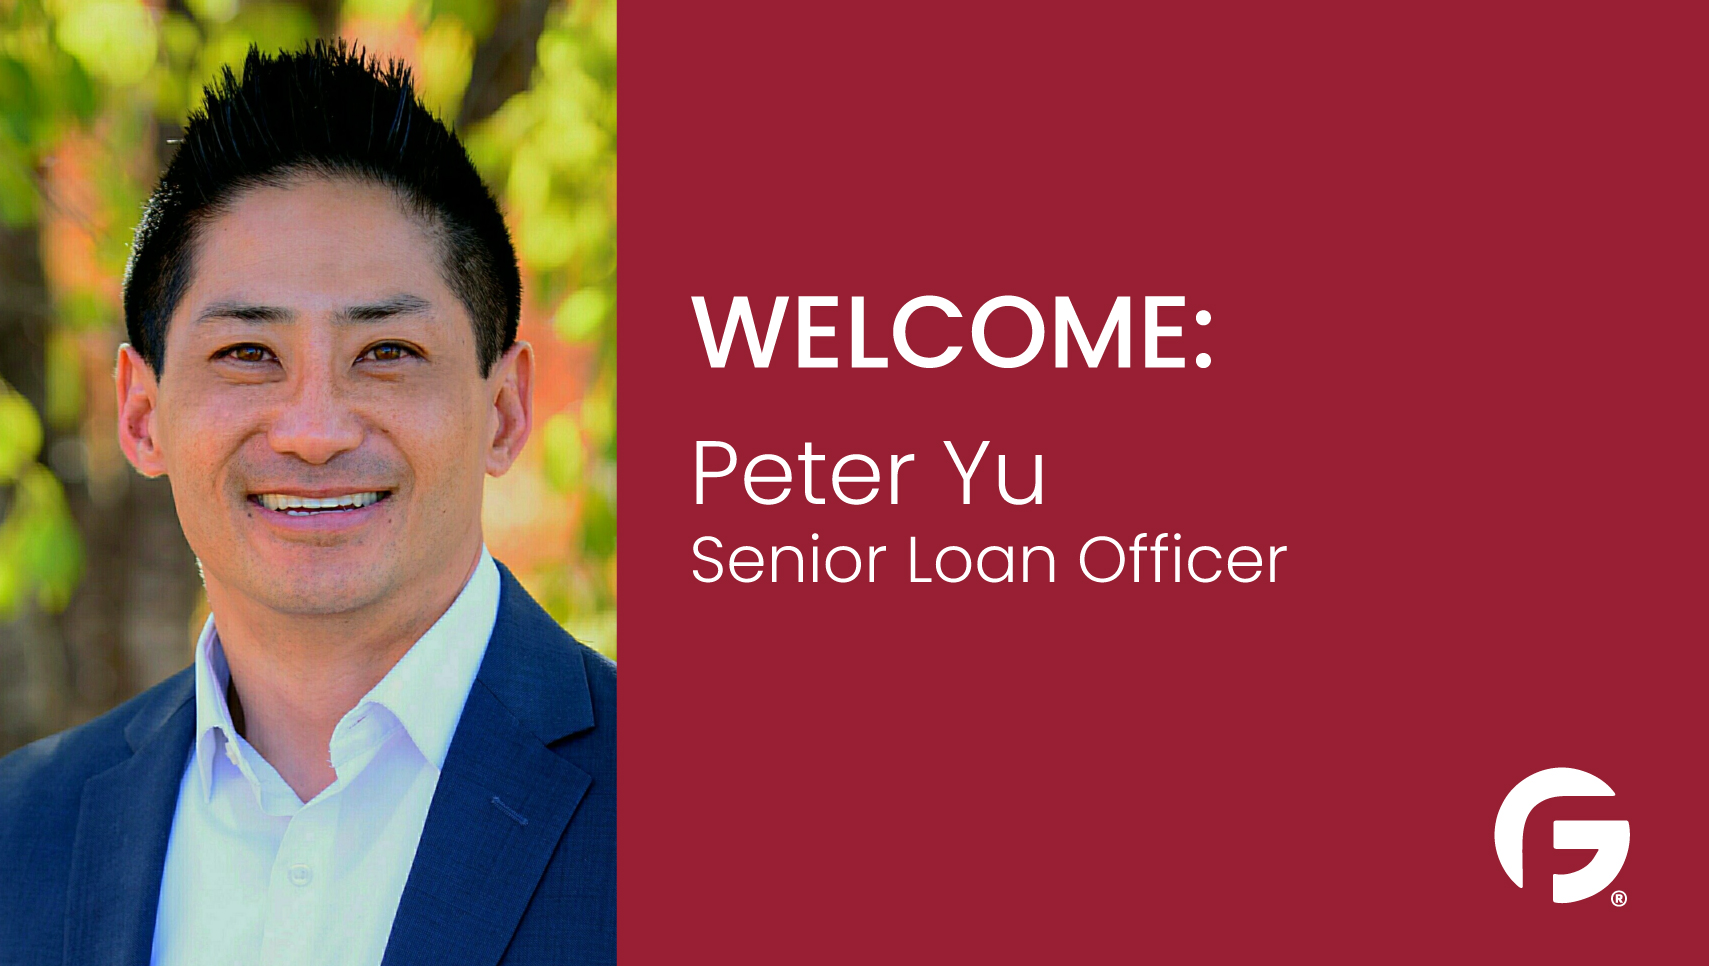 Peter Yu, Loan Officer, serving the state of Colorado